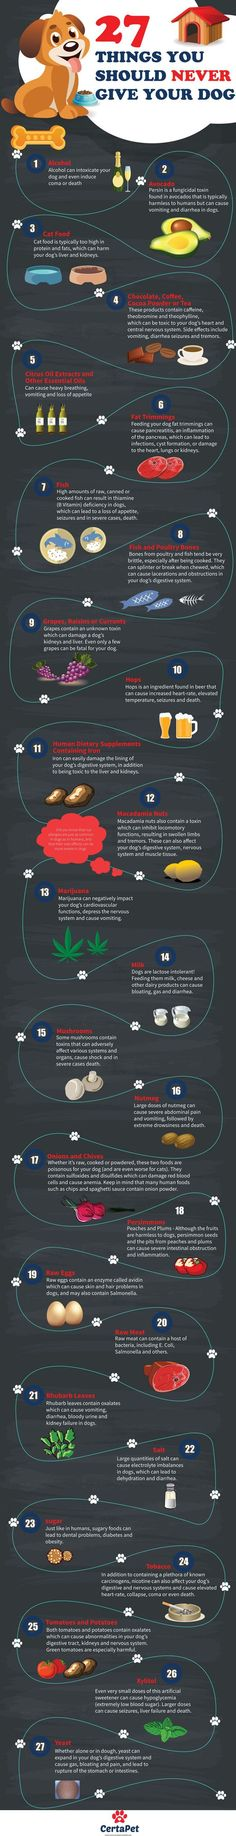 27 Toxic Foods for Dogs Infographic #doginfographic